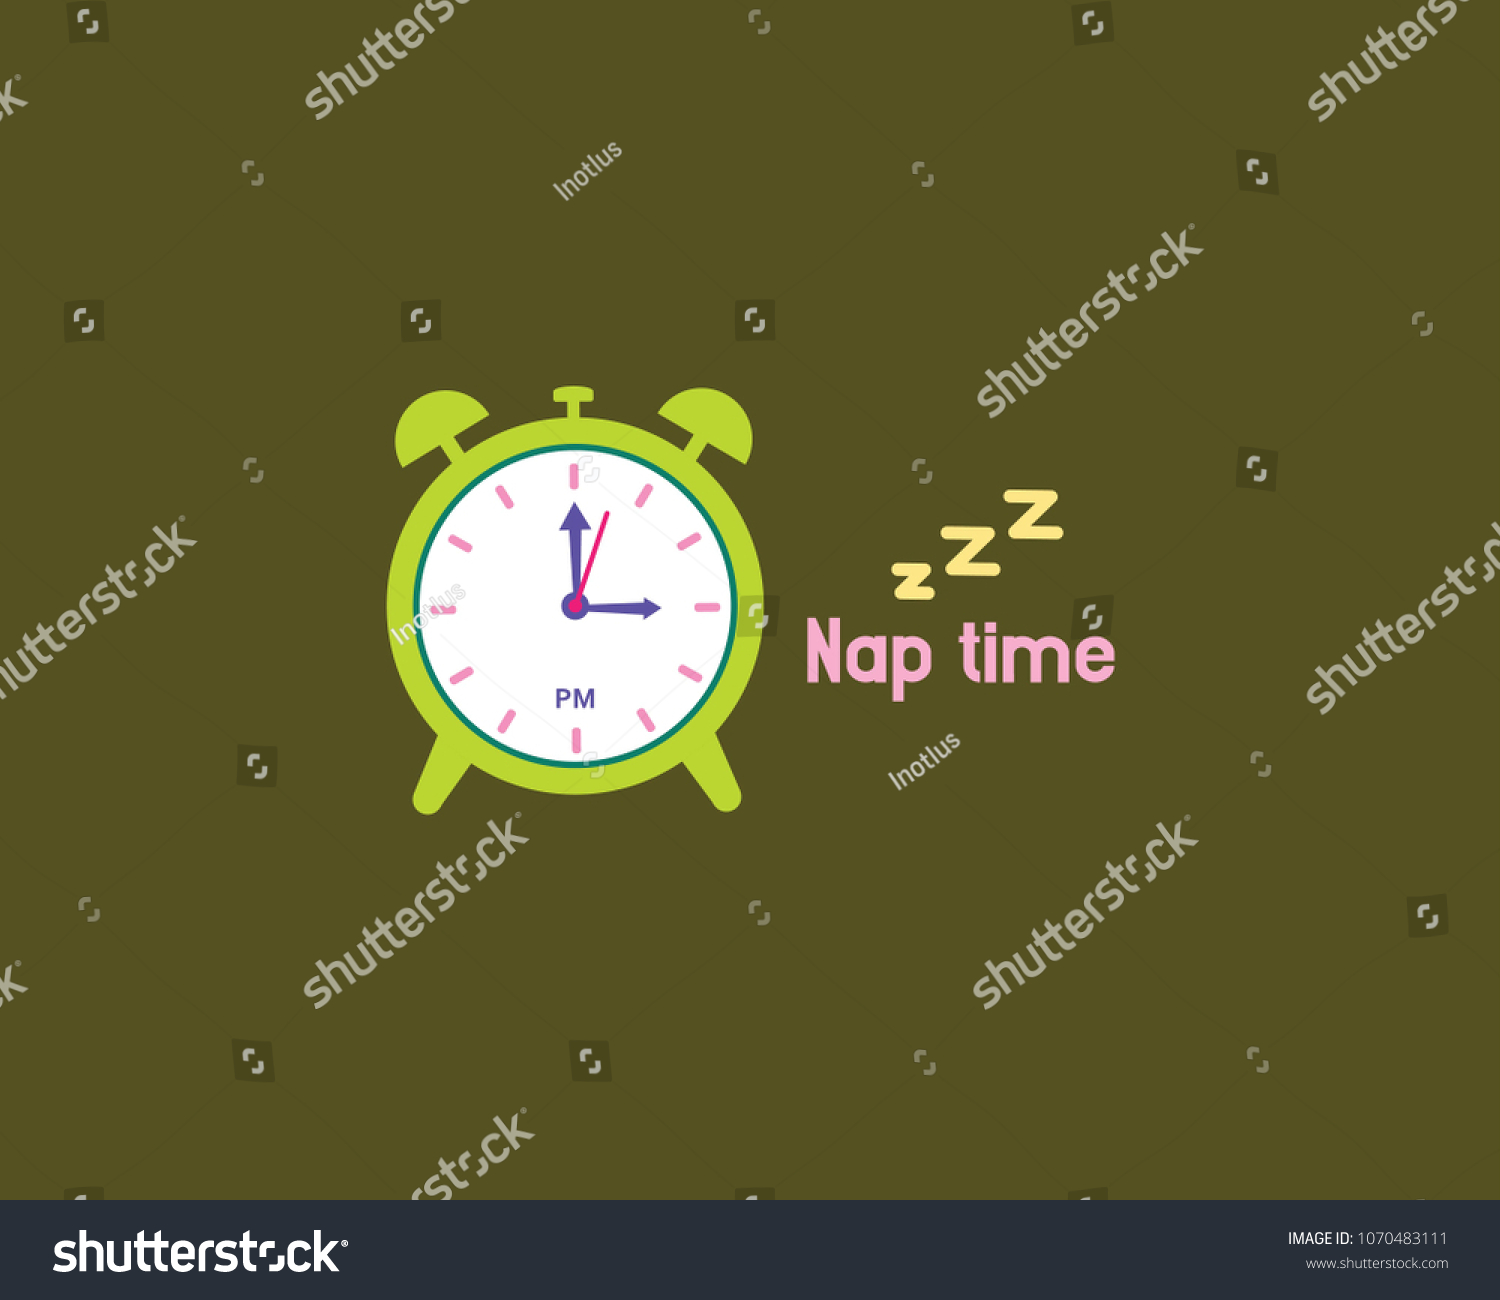 Schedule Daily Activities Design Template Stock Vector Royalty Free